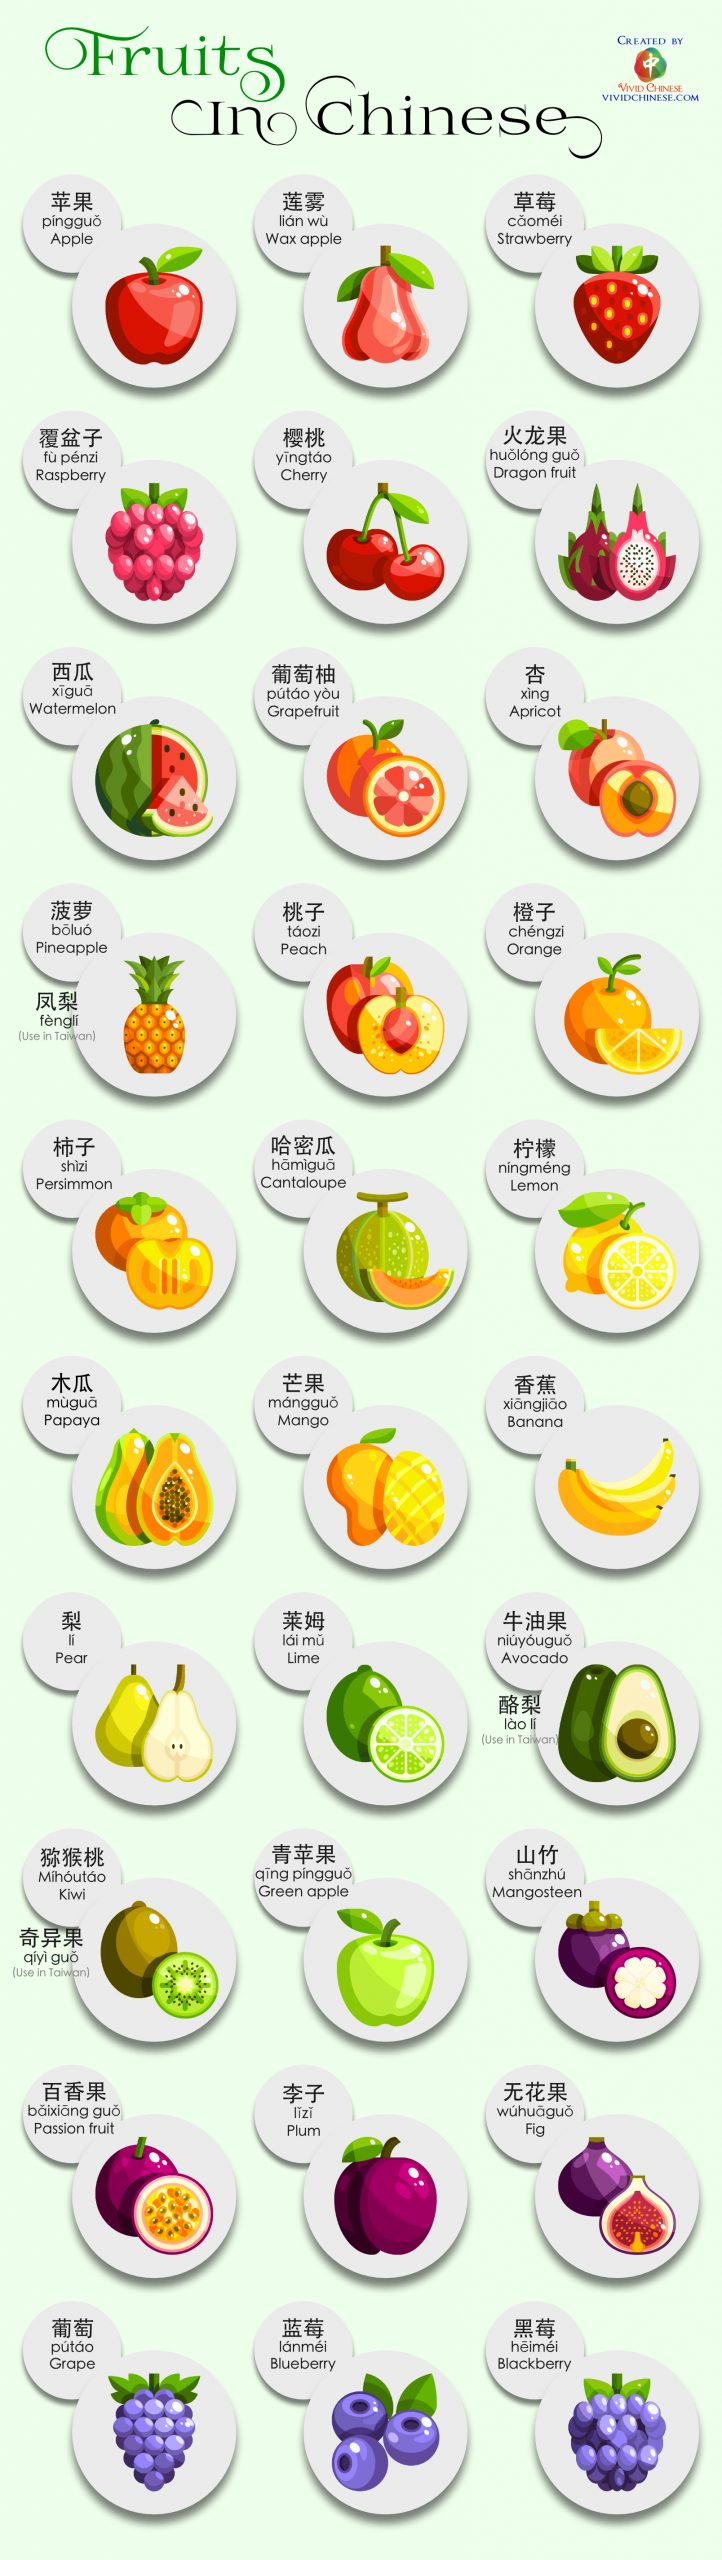 Fruits in Chinese Infographic